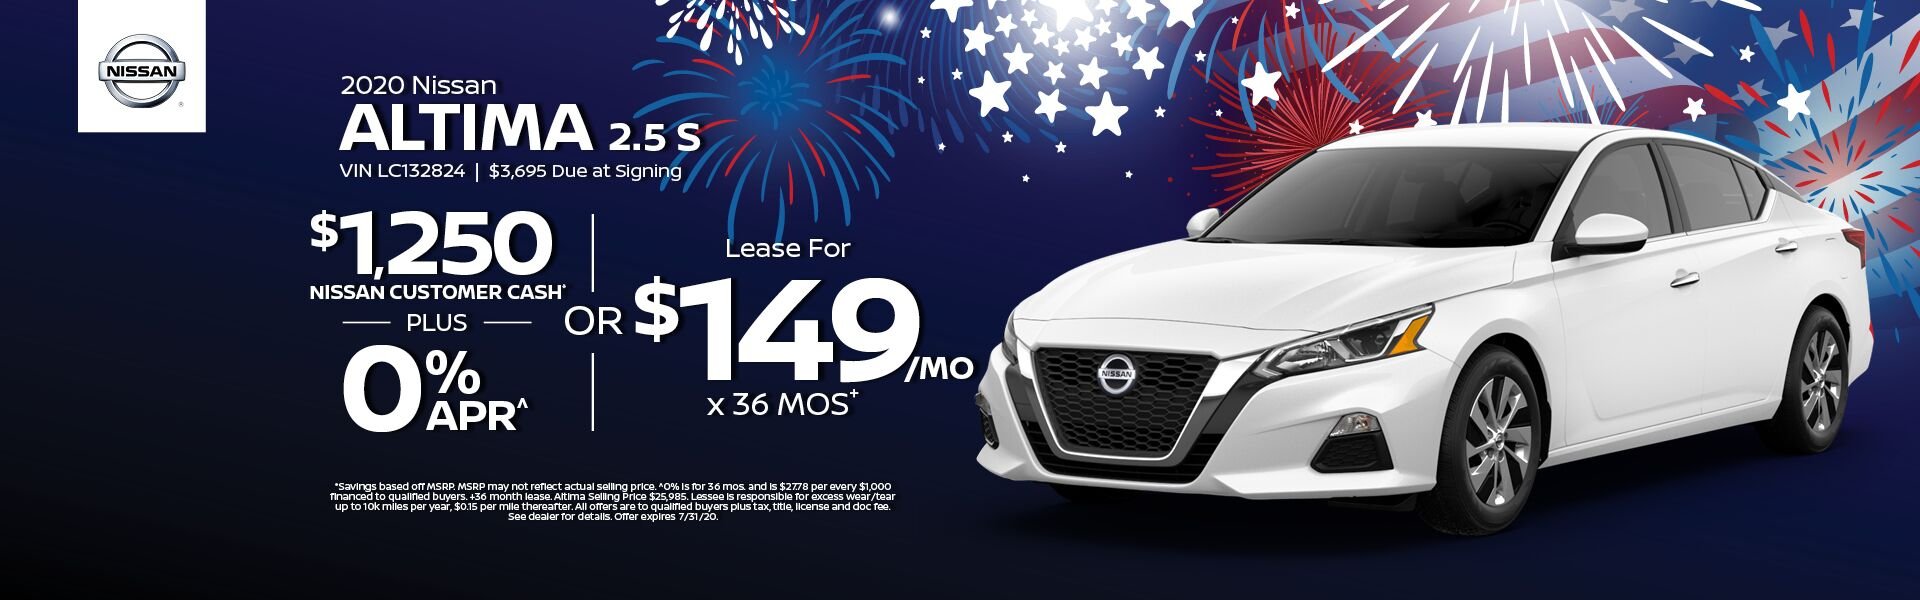 2020 Altima Lease for $149 mo.